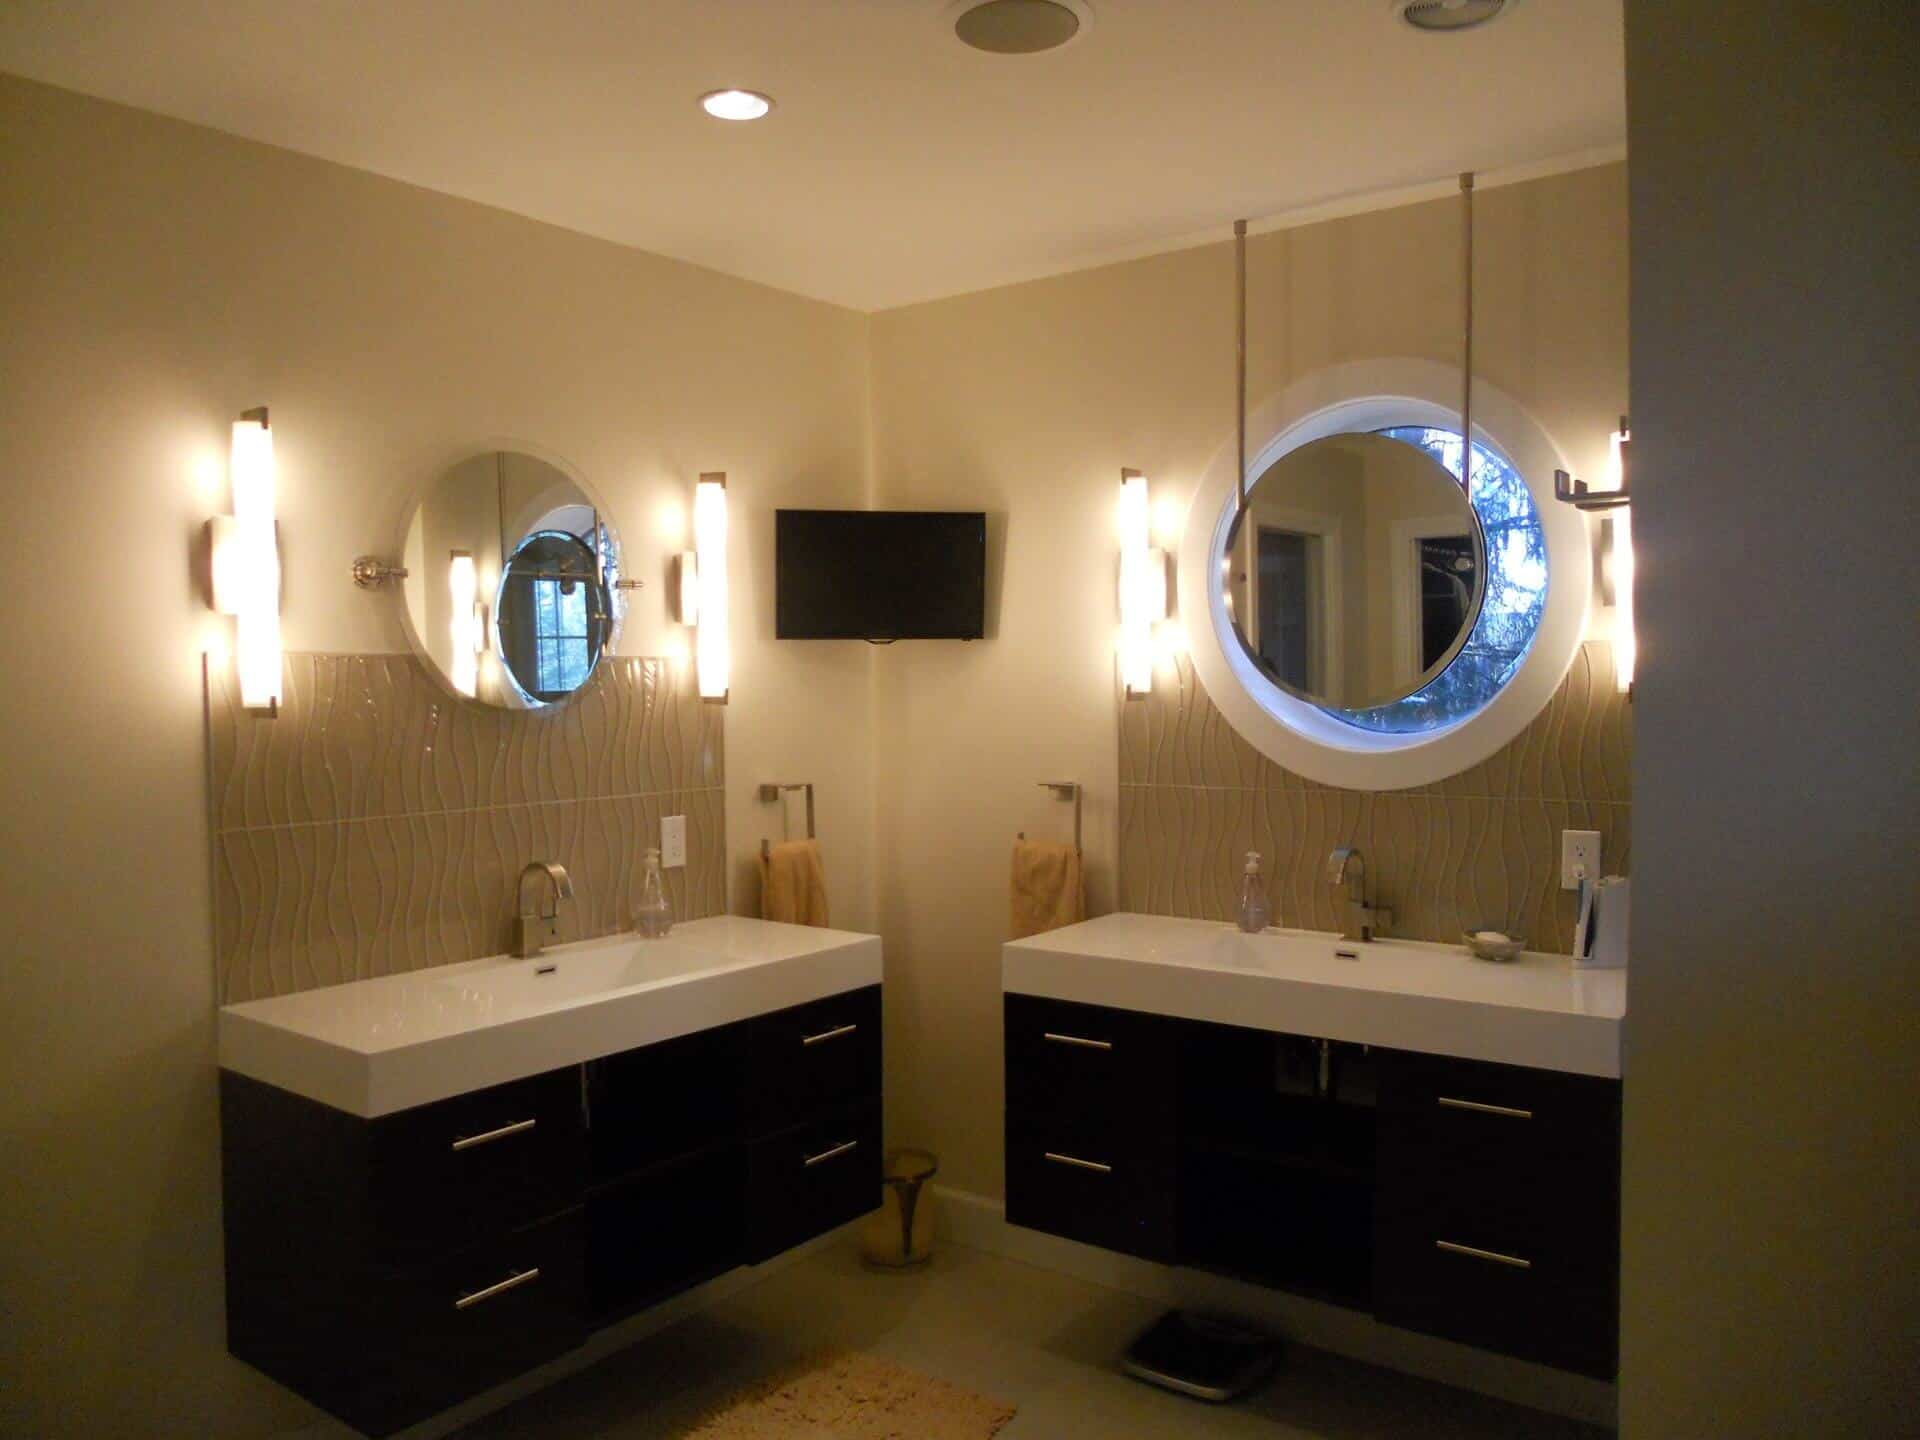 Remodel Bathroom Rochester Ny bathroom renovation rochester ny, bathroom vanities, custom